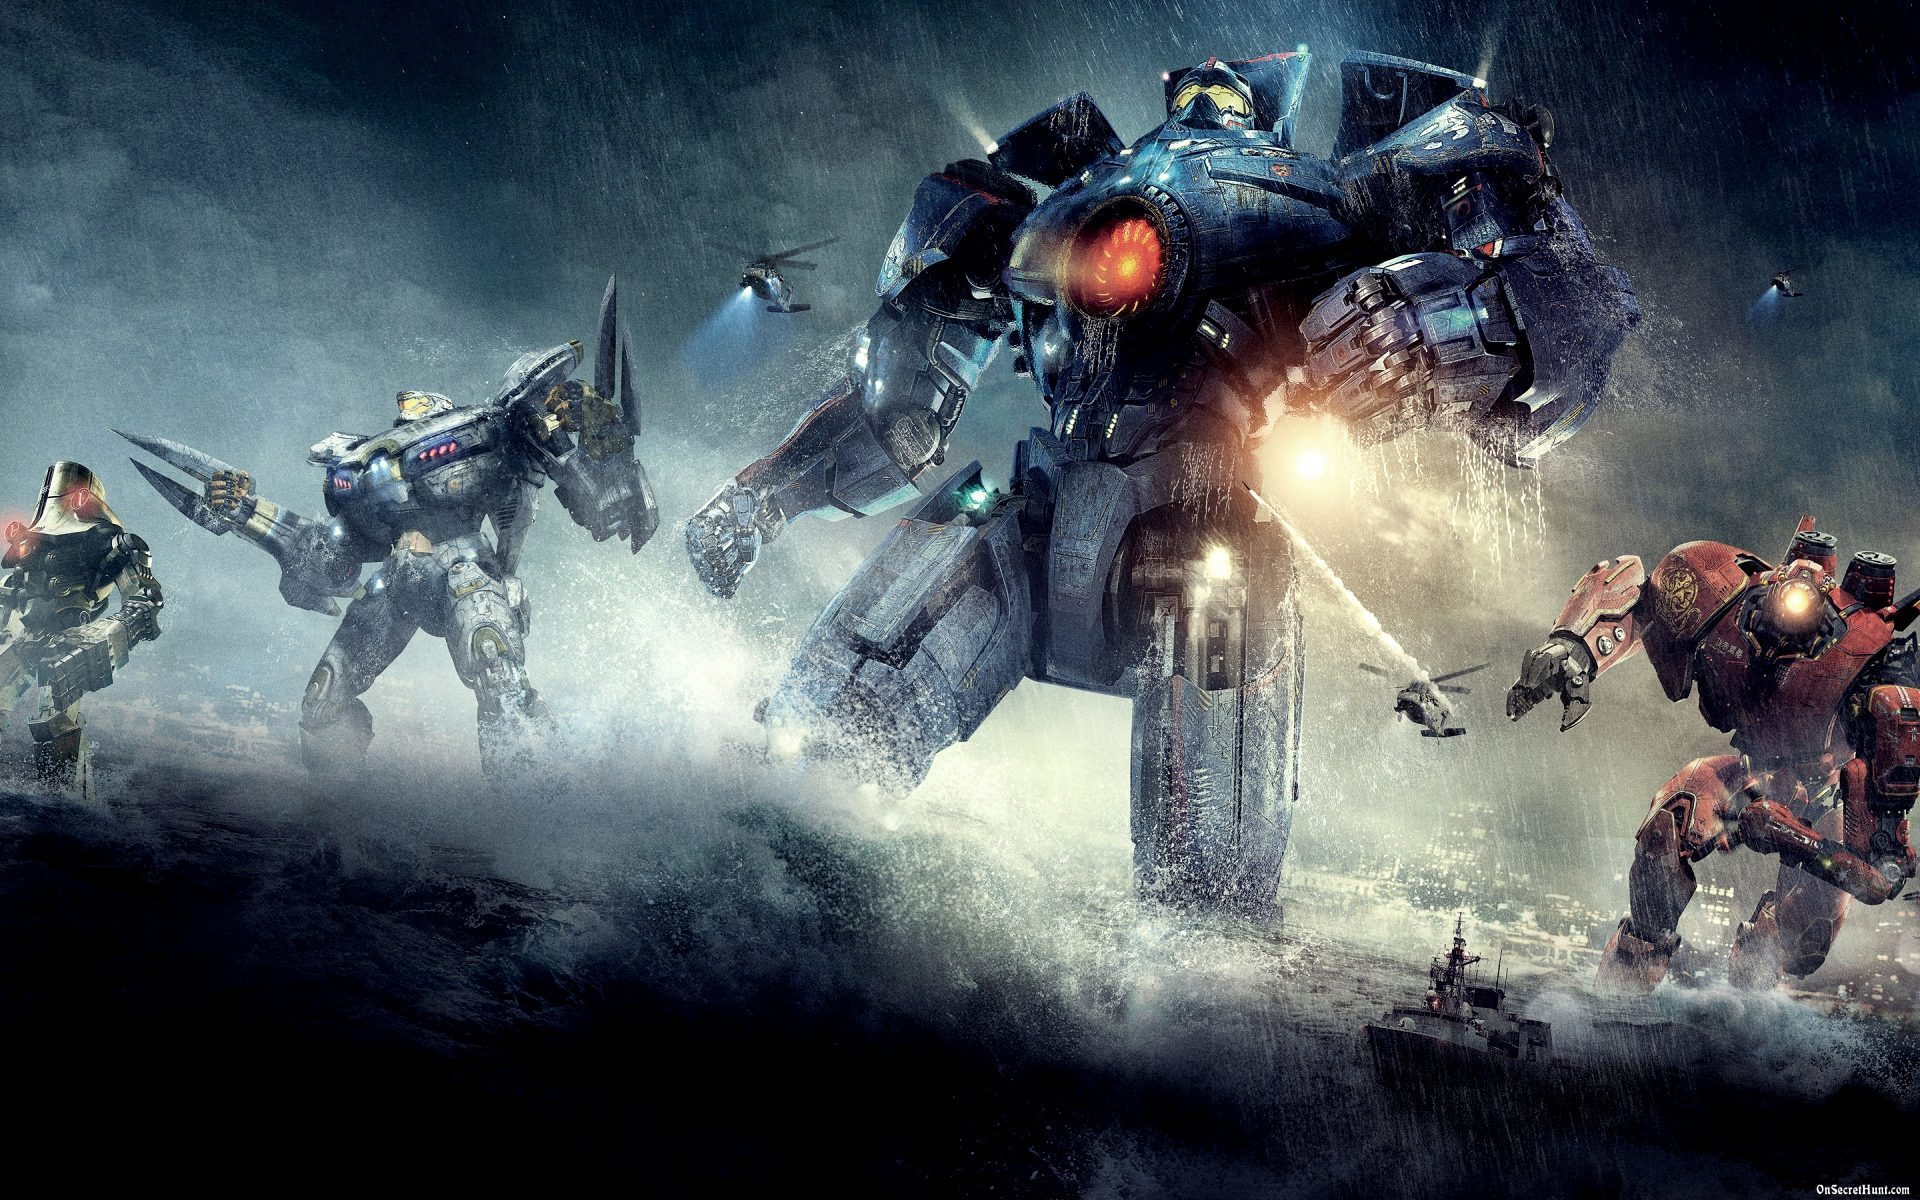 'Pacific Rim': A Love Letter to the Monsters of Old